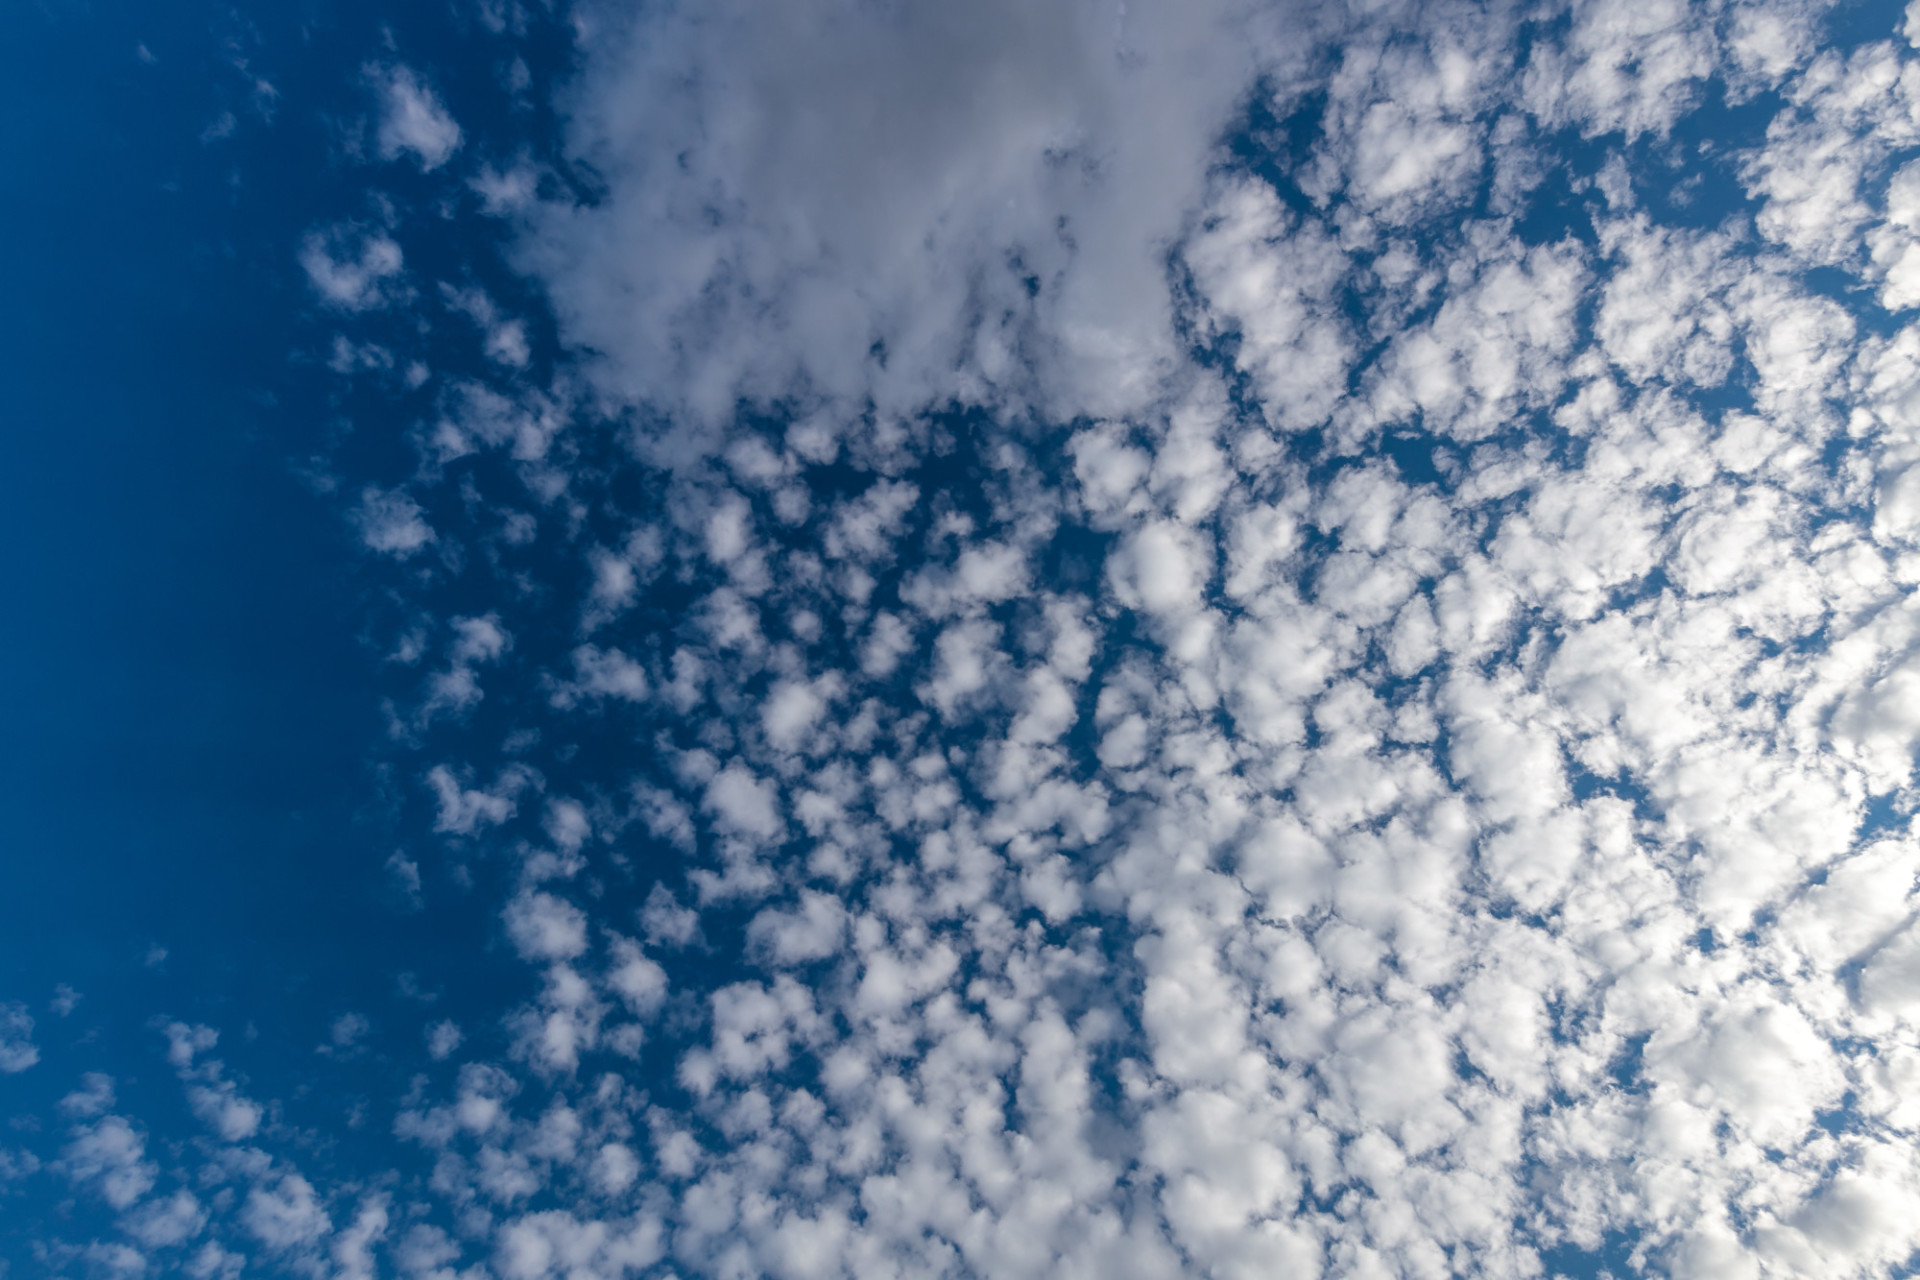 Blue Sky with white clouds for Sky Replacement